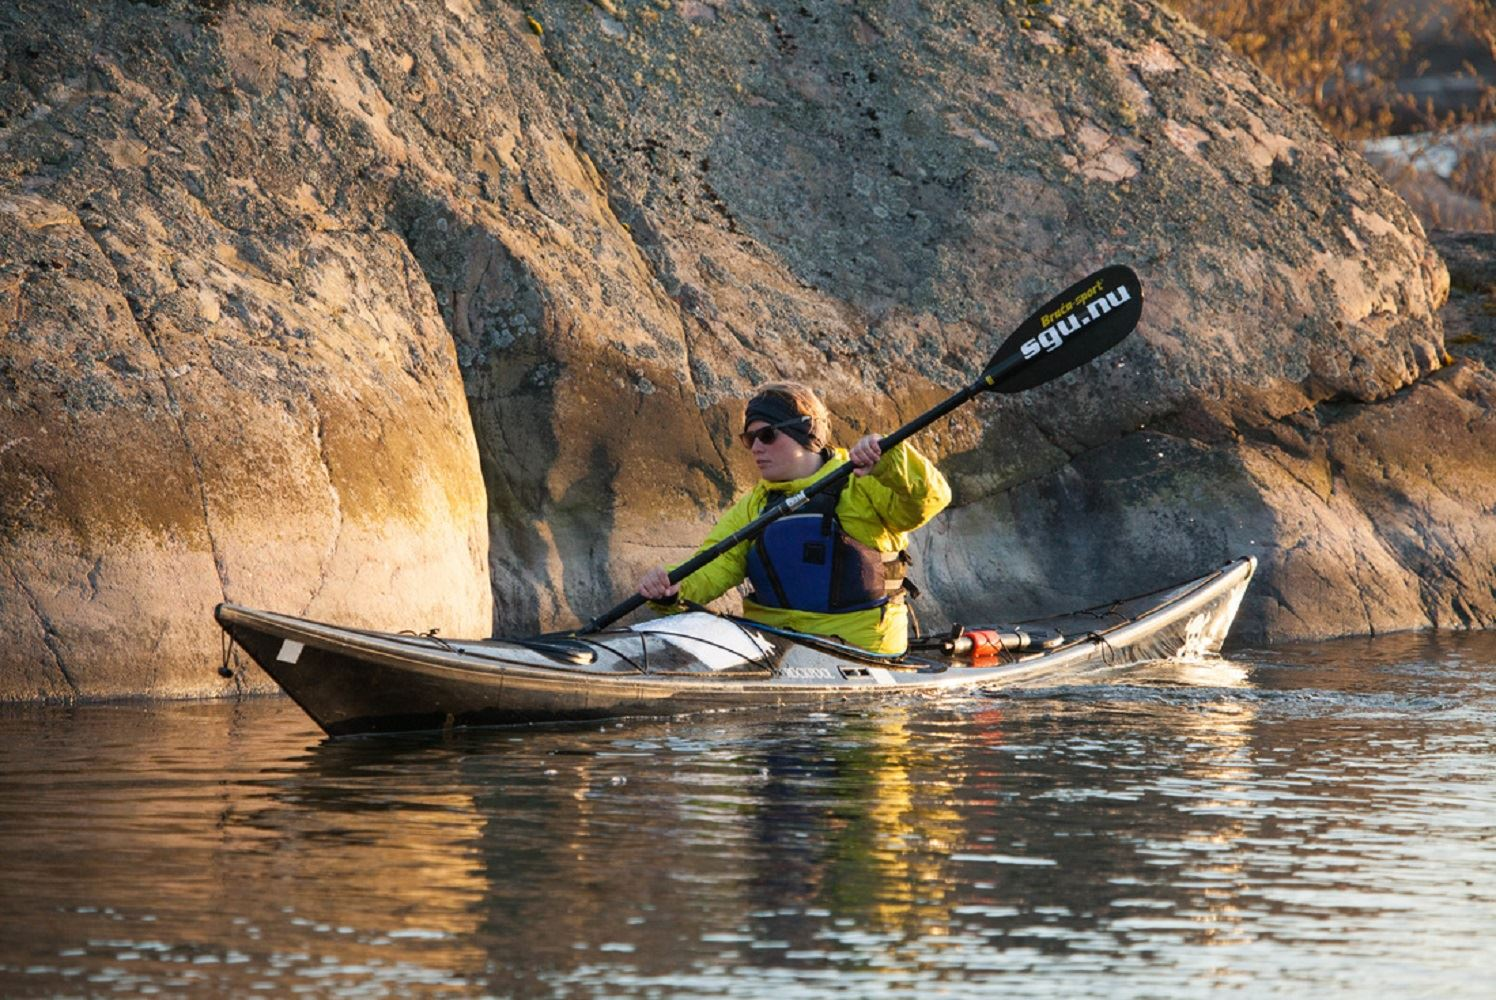 Paddelboden - Course 2: Paddling techniques